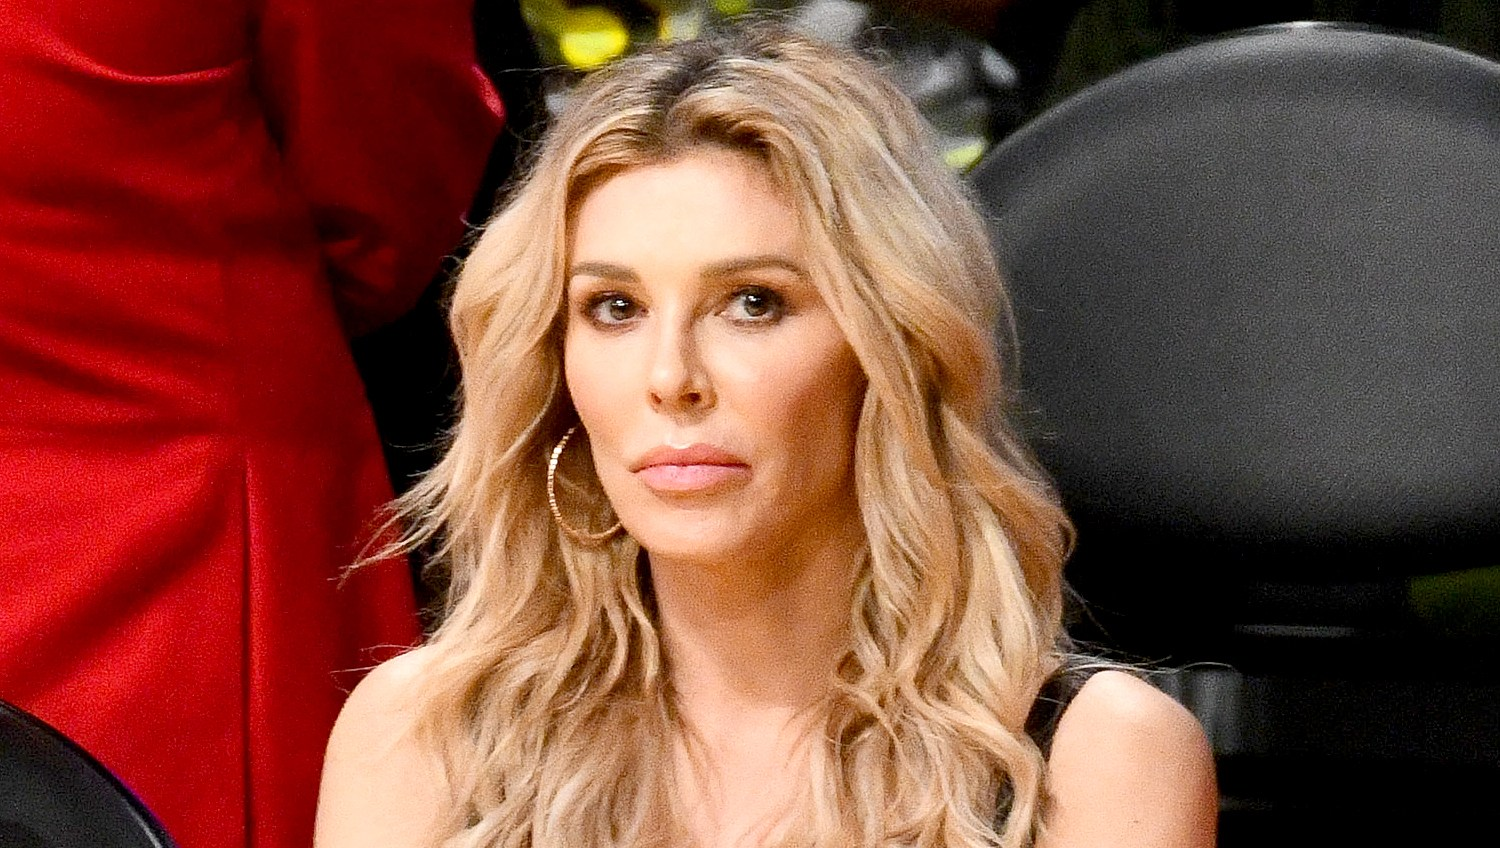 Brandi-Glanville-defend-butt-selfie